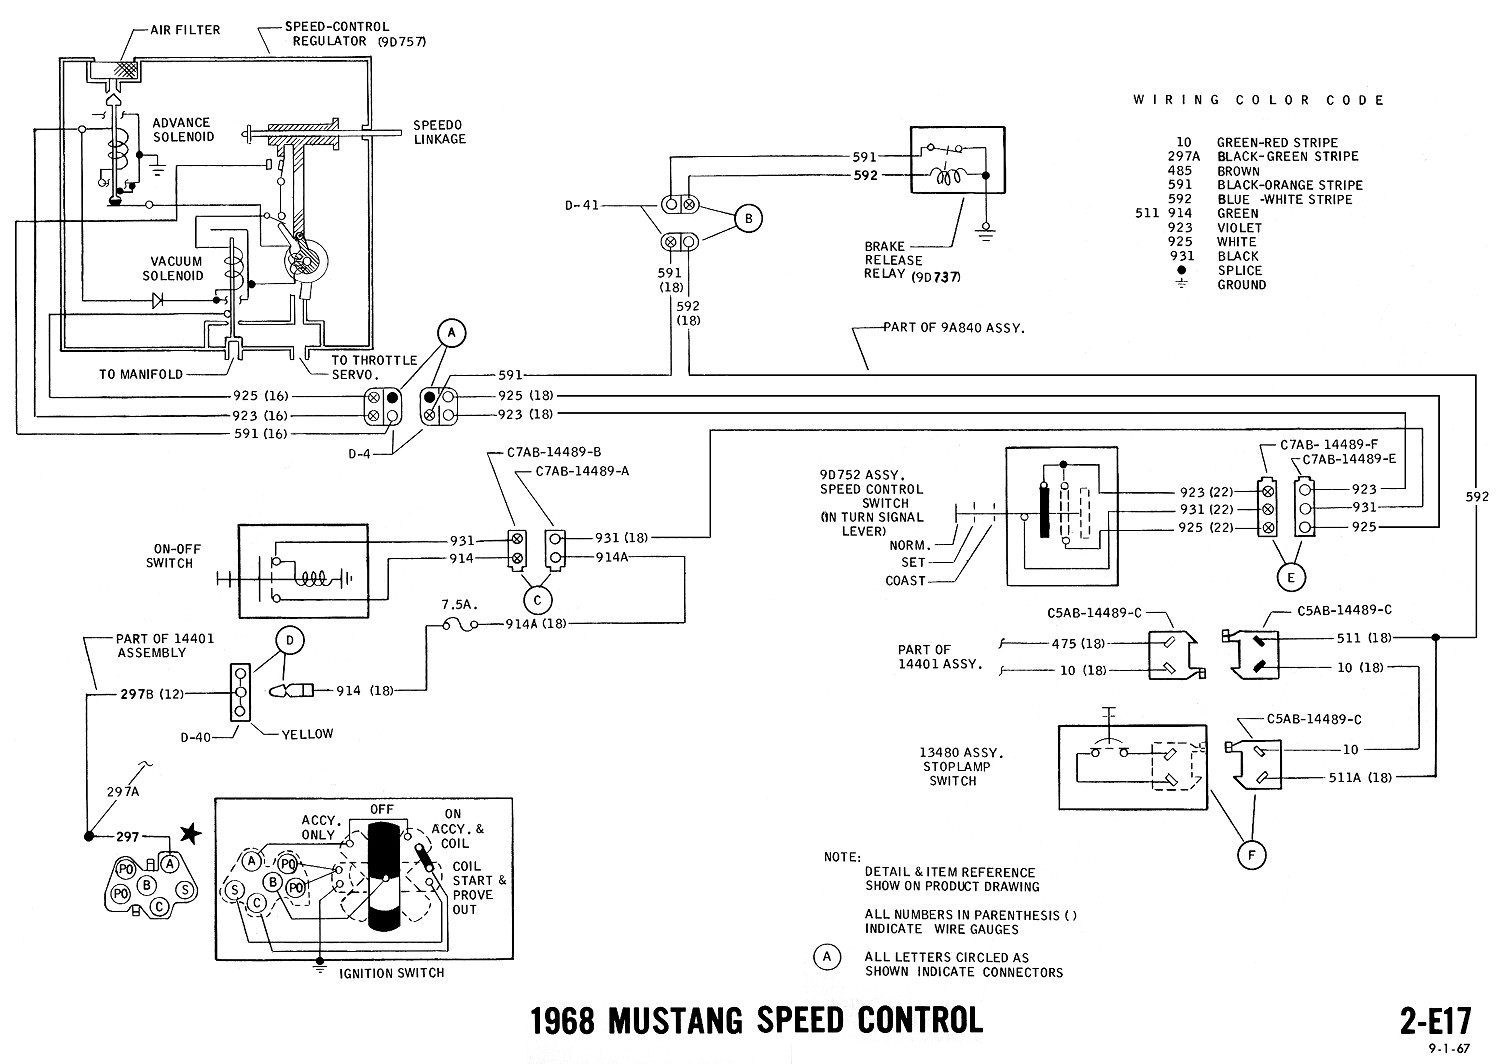 mustang ignition switch wiring diagram  1968 mustang ignition switch wiring diagram wiring diagram and on 1968 mustang ignition switch wiring diagram